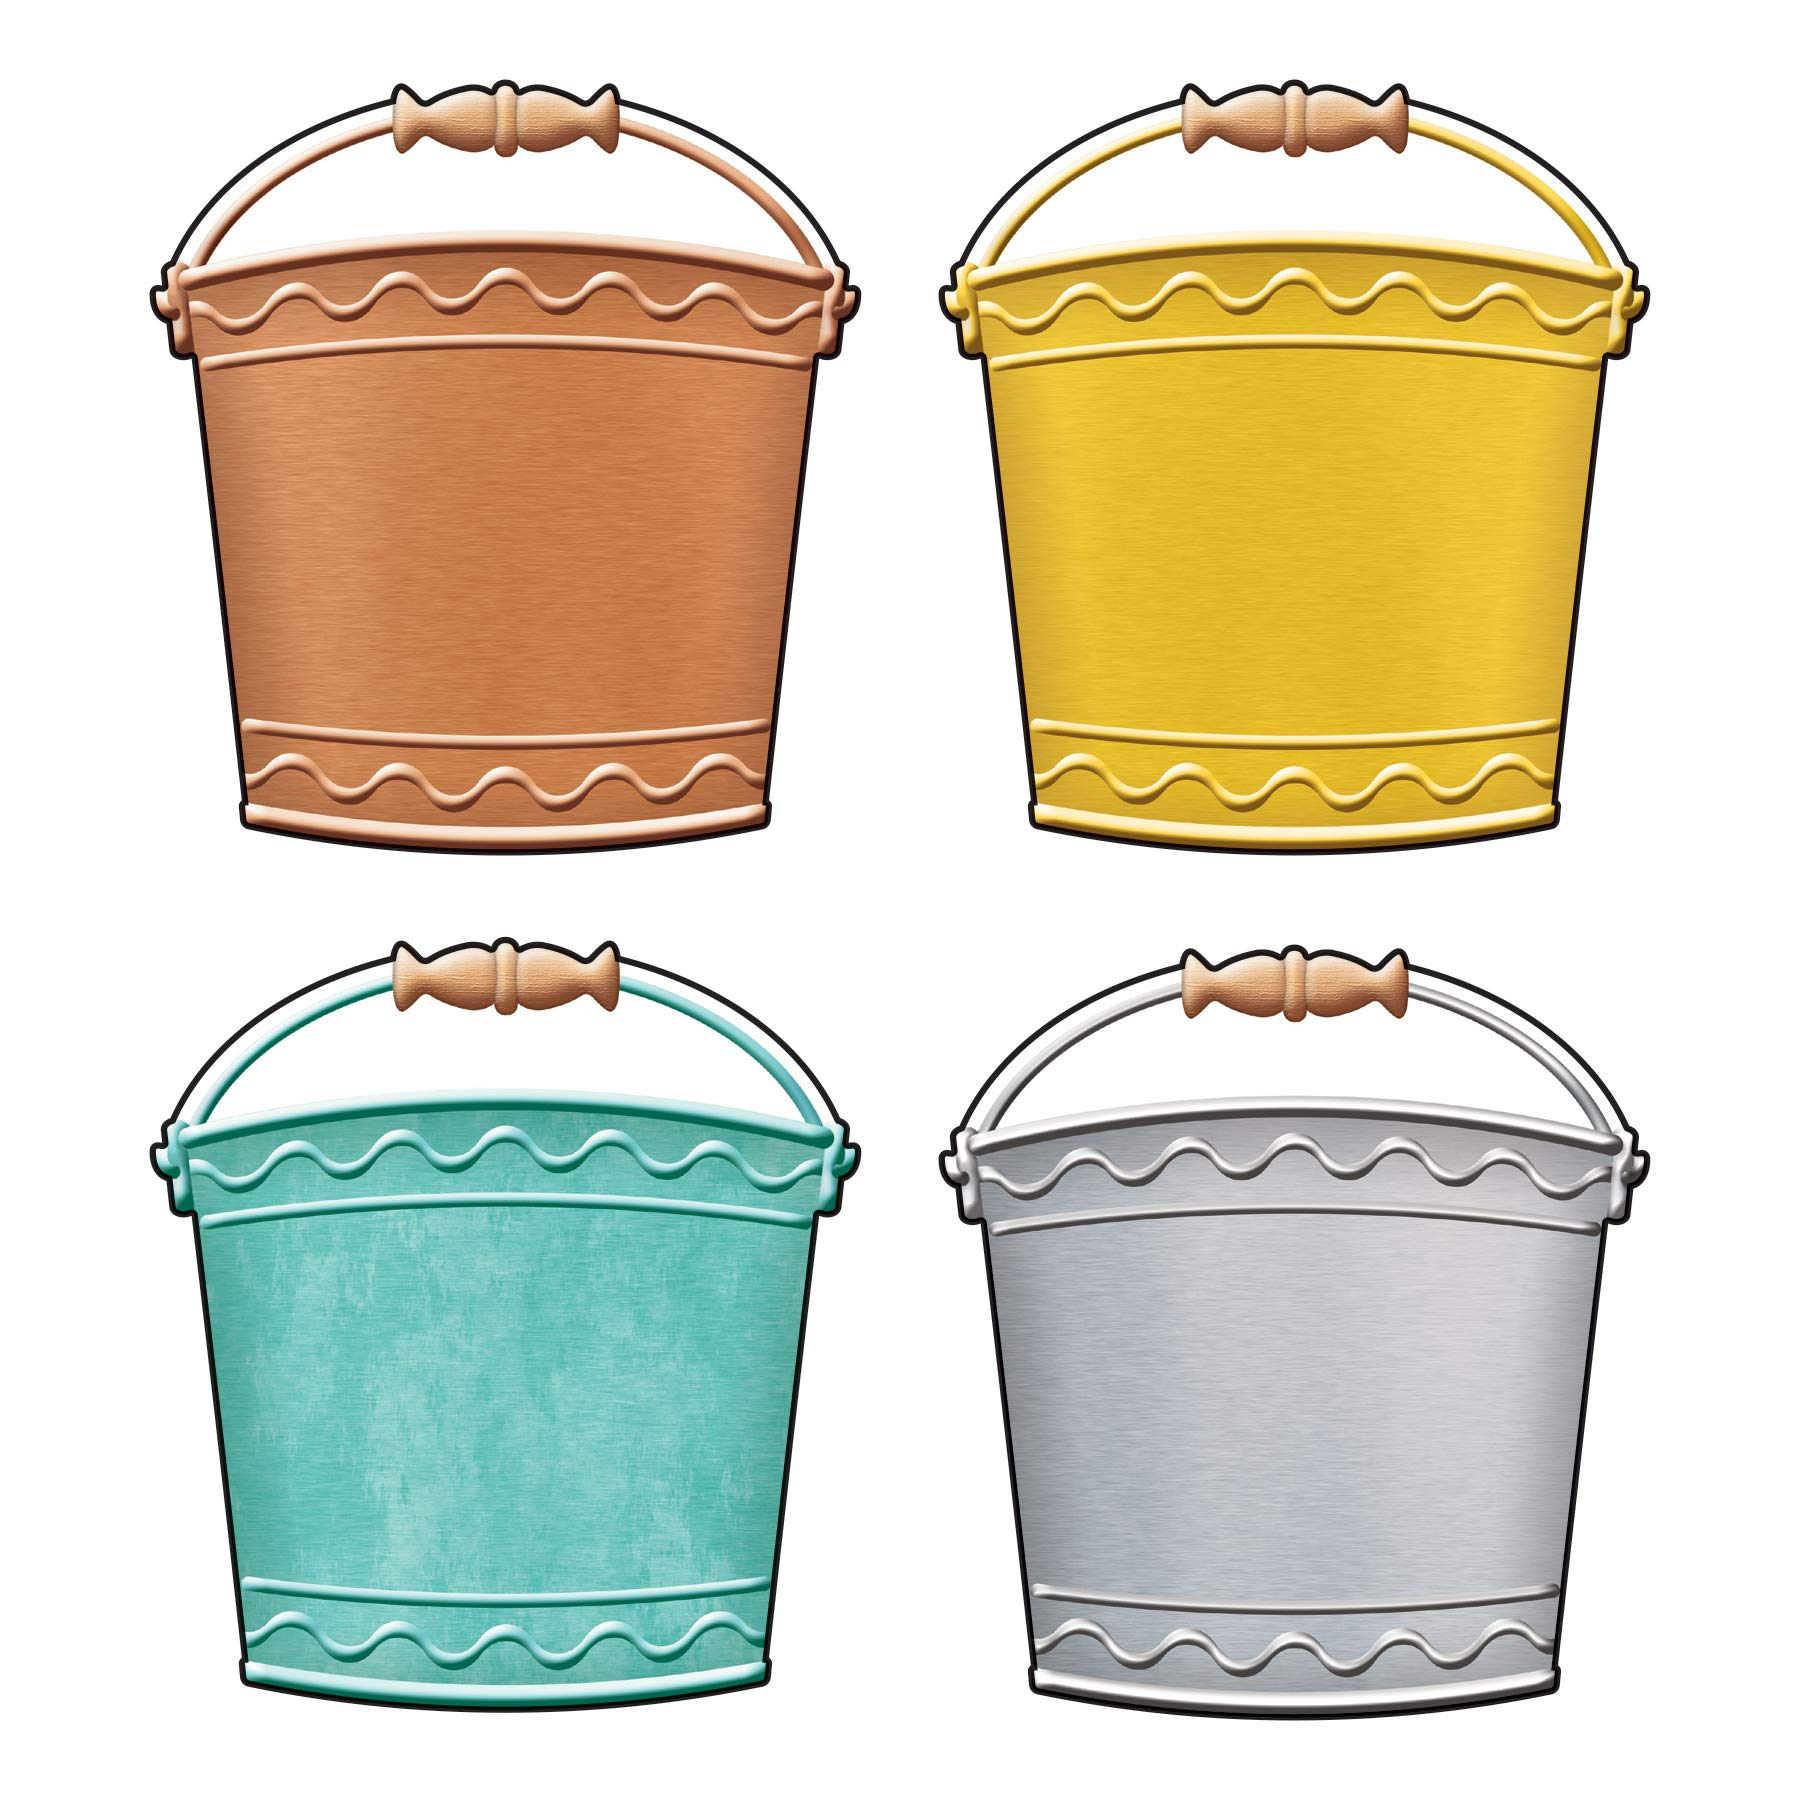 I ♥ Metal Buckets Classic Accents Variety Pack, 36 Count by Trend Enterprises Inc